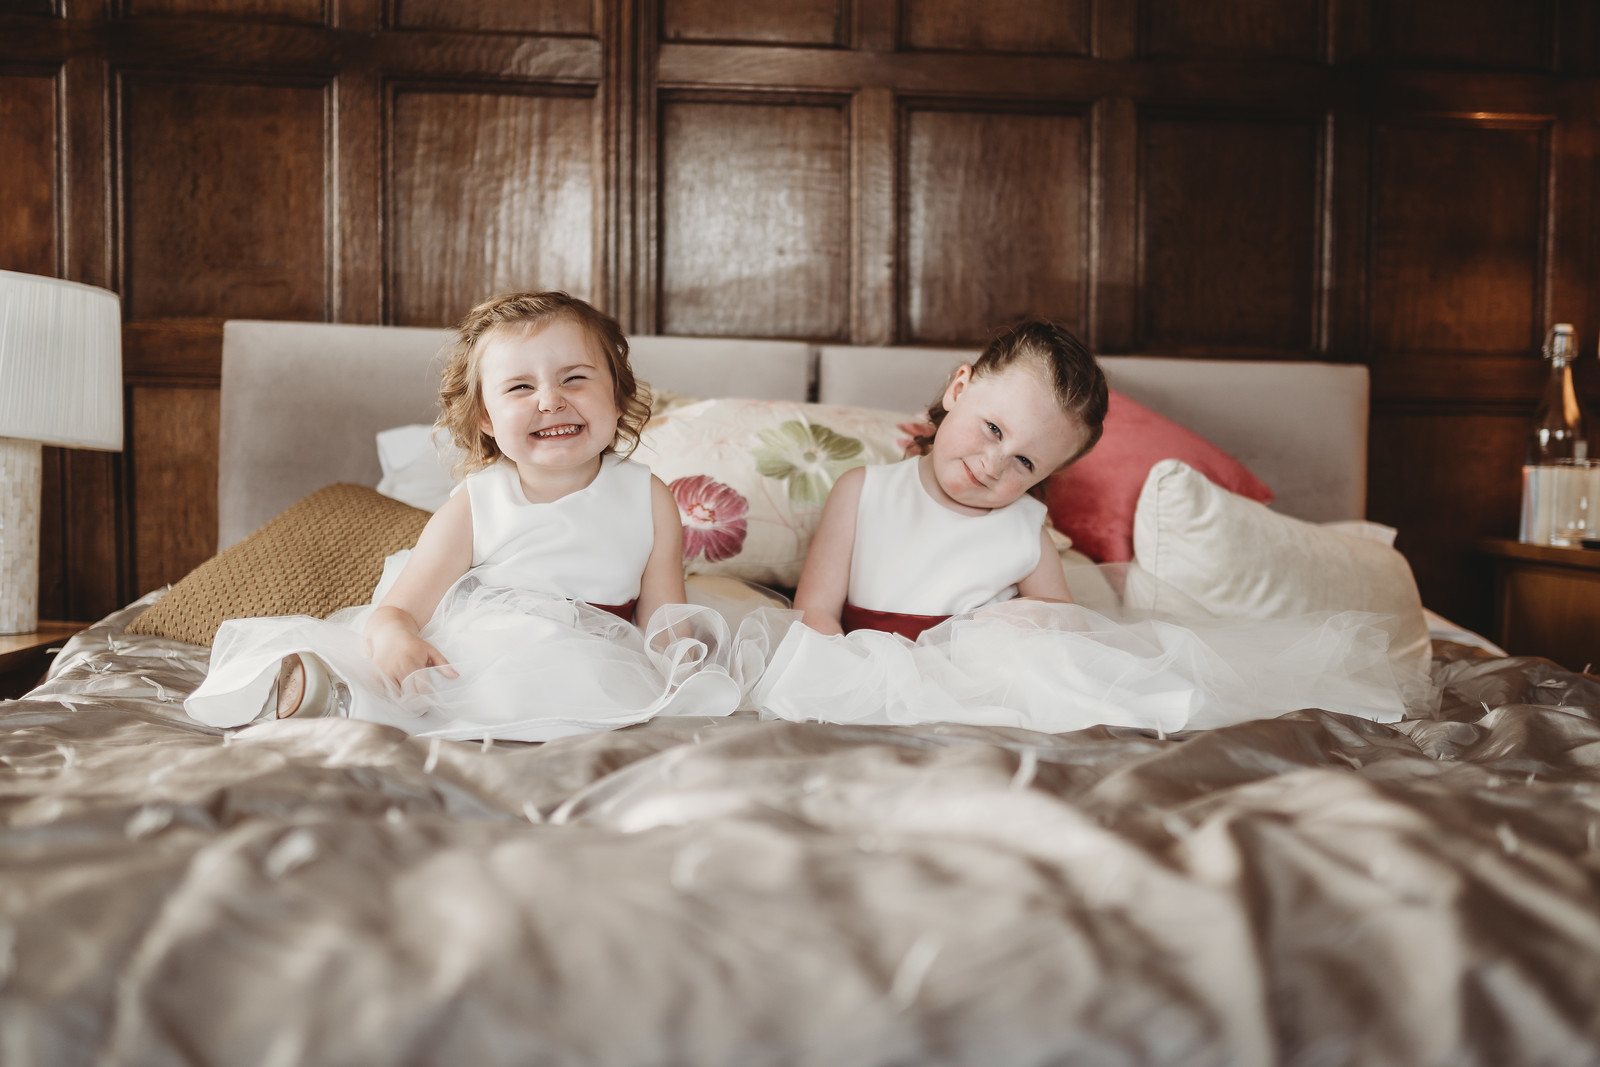 Young children smiling in bed as they wait for the wedding to begin